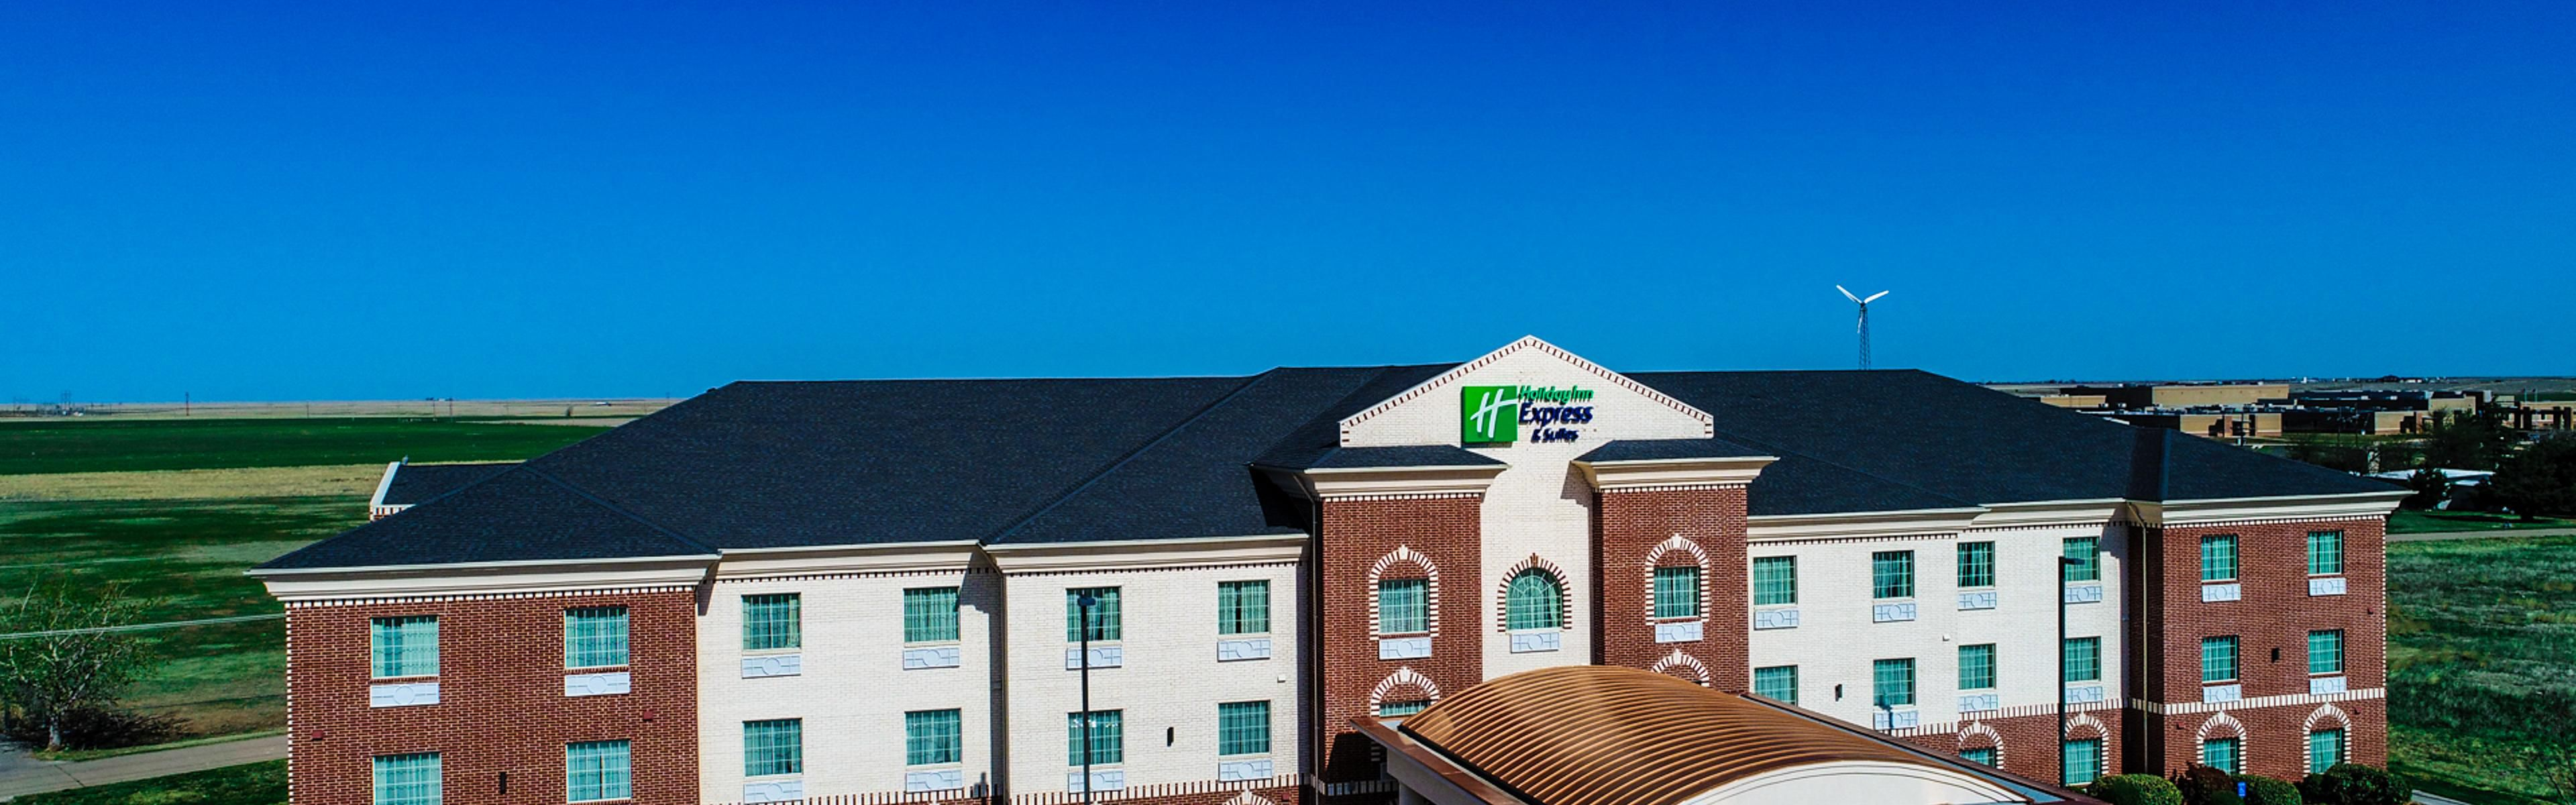 Holiday Inn Express & Suites Pampa image 0